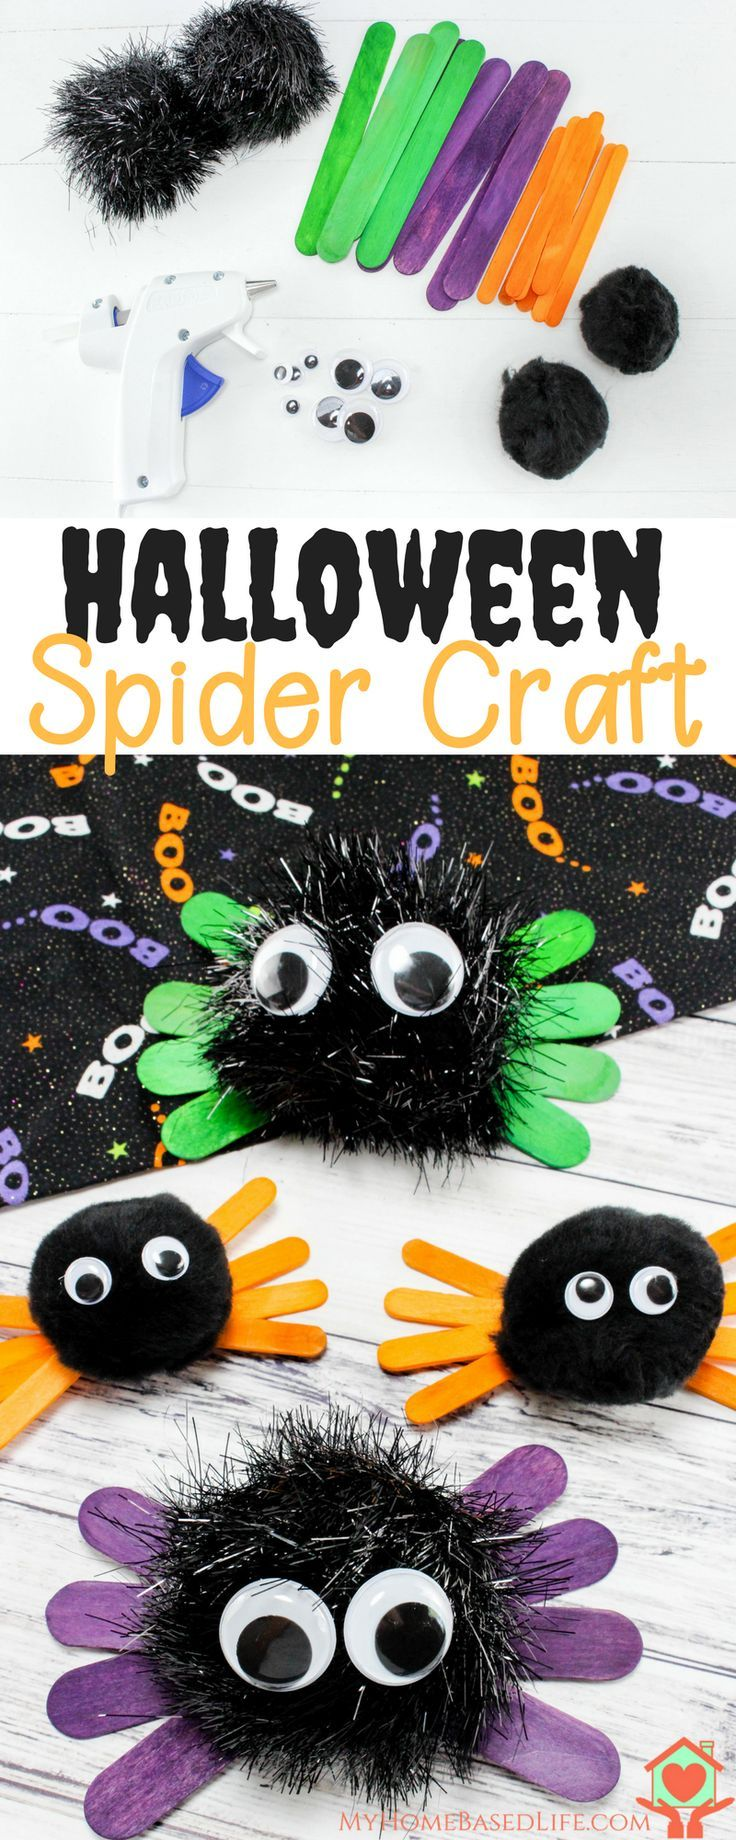 27+ Very easy halloween crafts for toddlers information